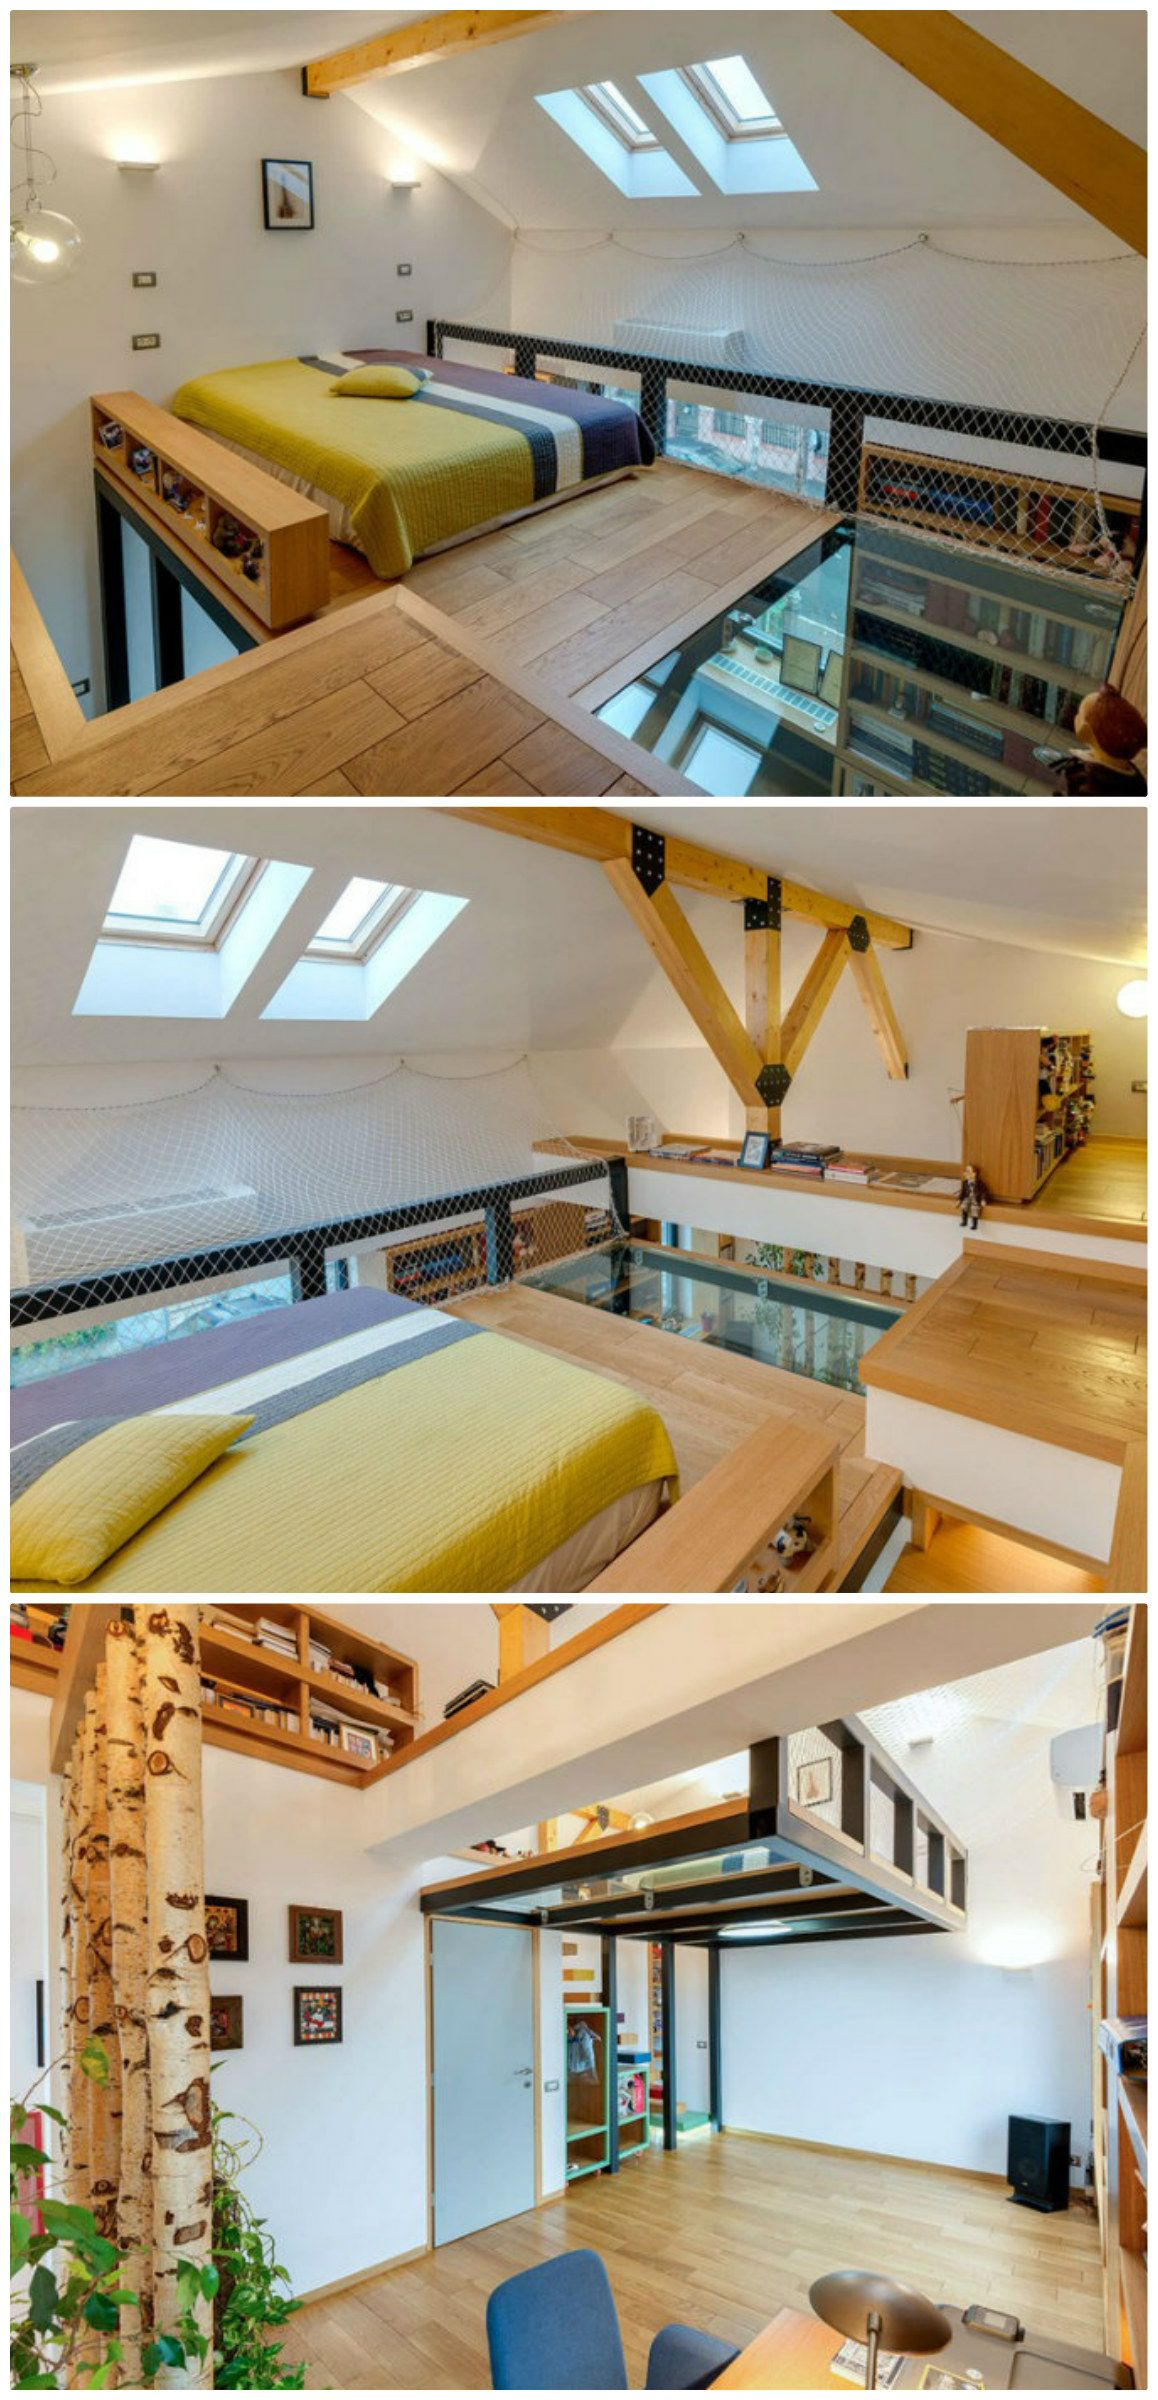 This lofted bedroom boasts  glass floor also best images decor dream house decorations rh pinterest